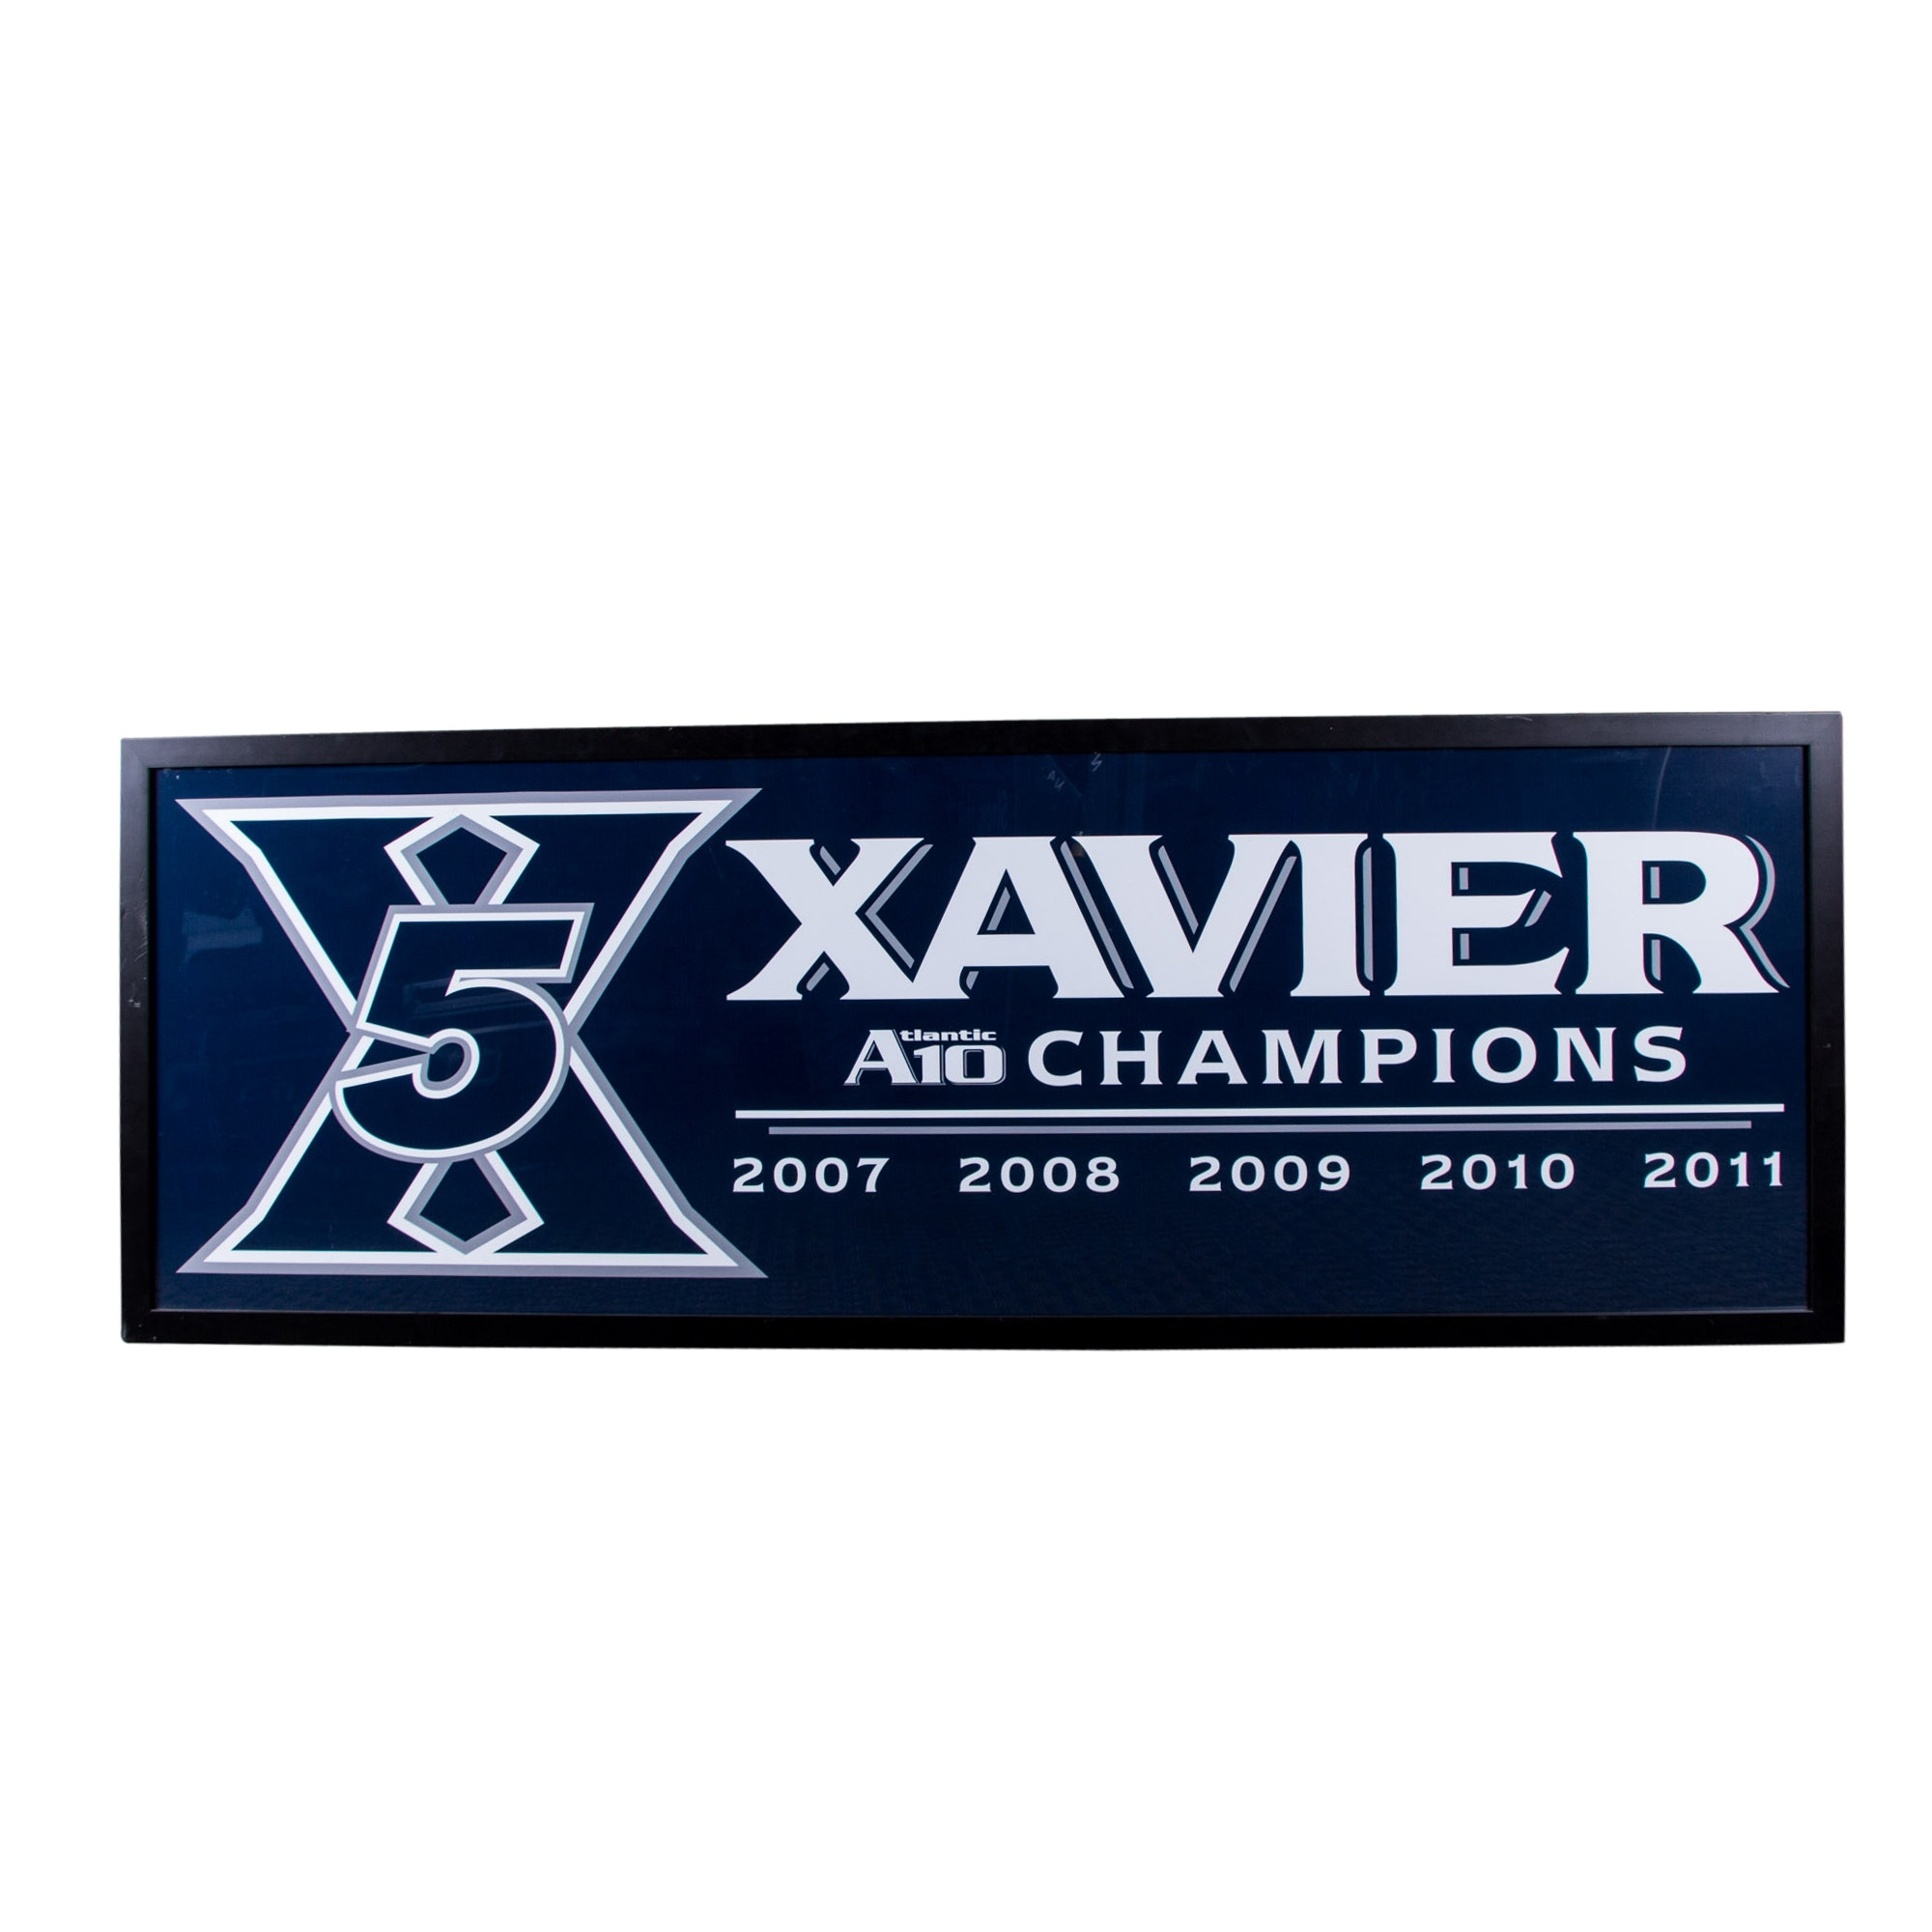 Xavier 5-Time Atlantic 10 Champions Framed Display